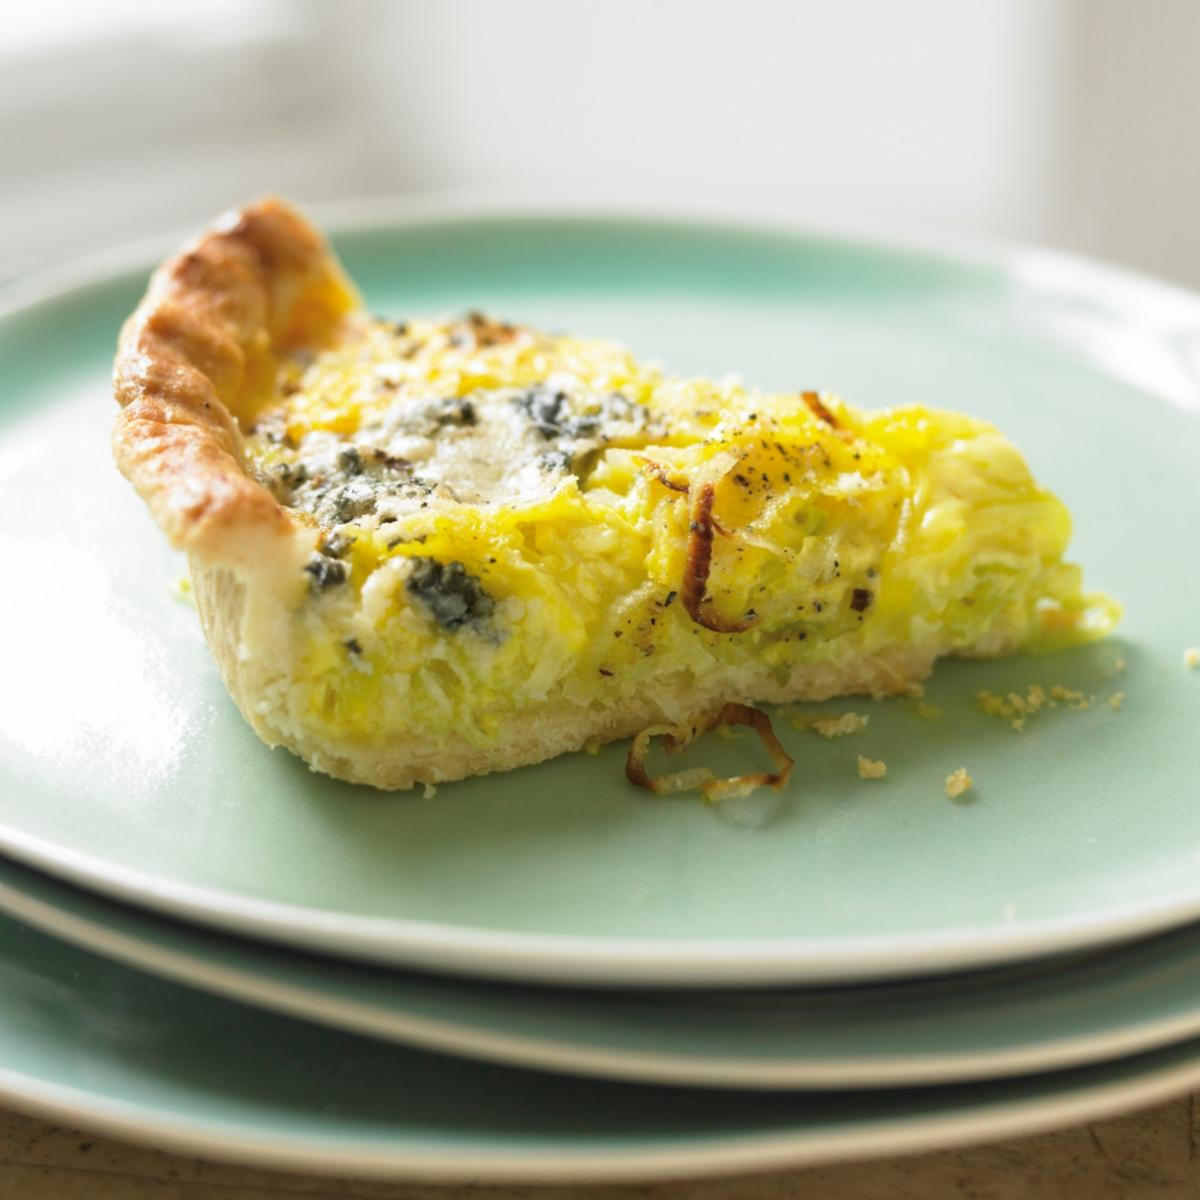 A picture of Delia's Roquefort and Leek Tart recipe